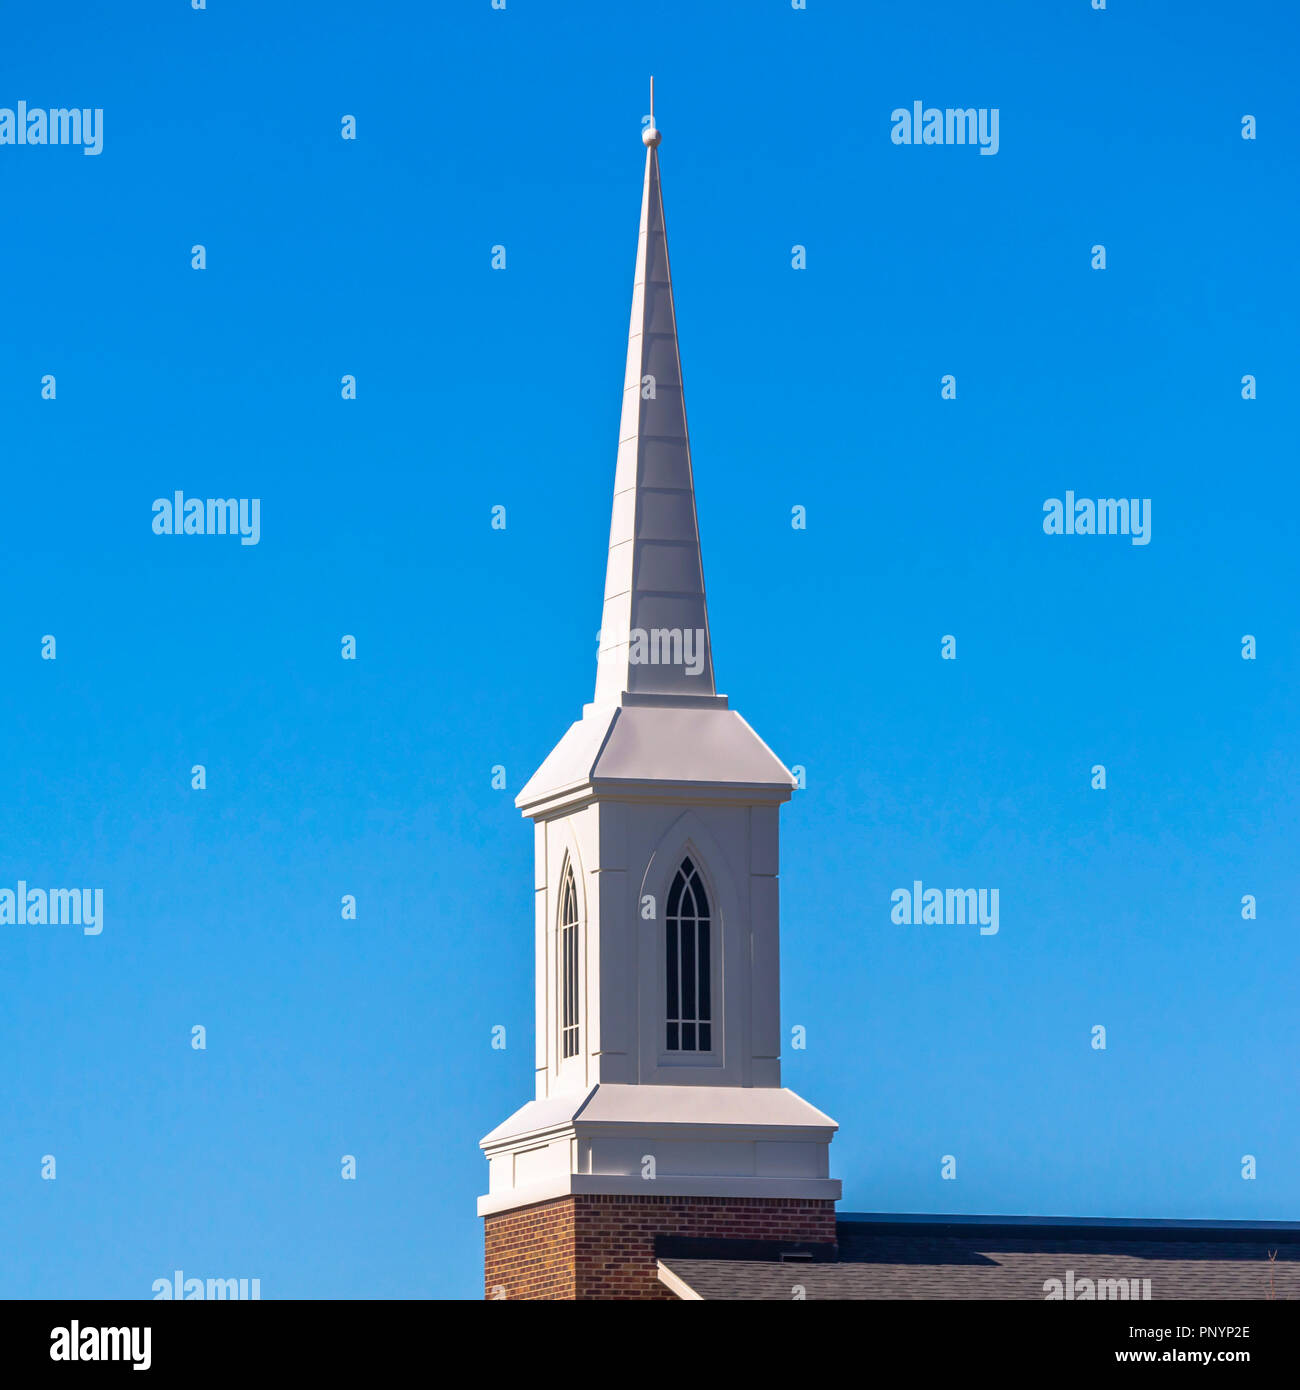 Steeple with arched windows against blue sky - Stock Image